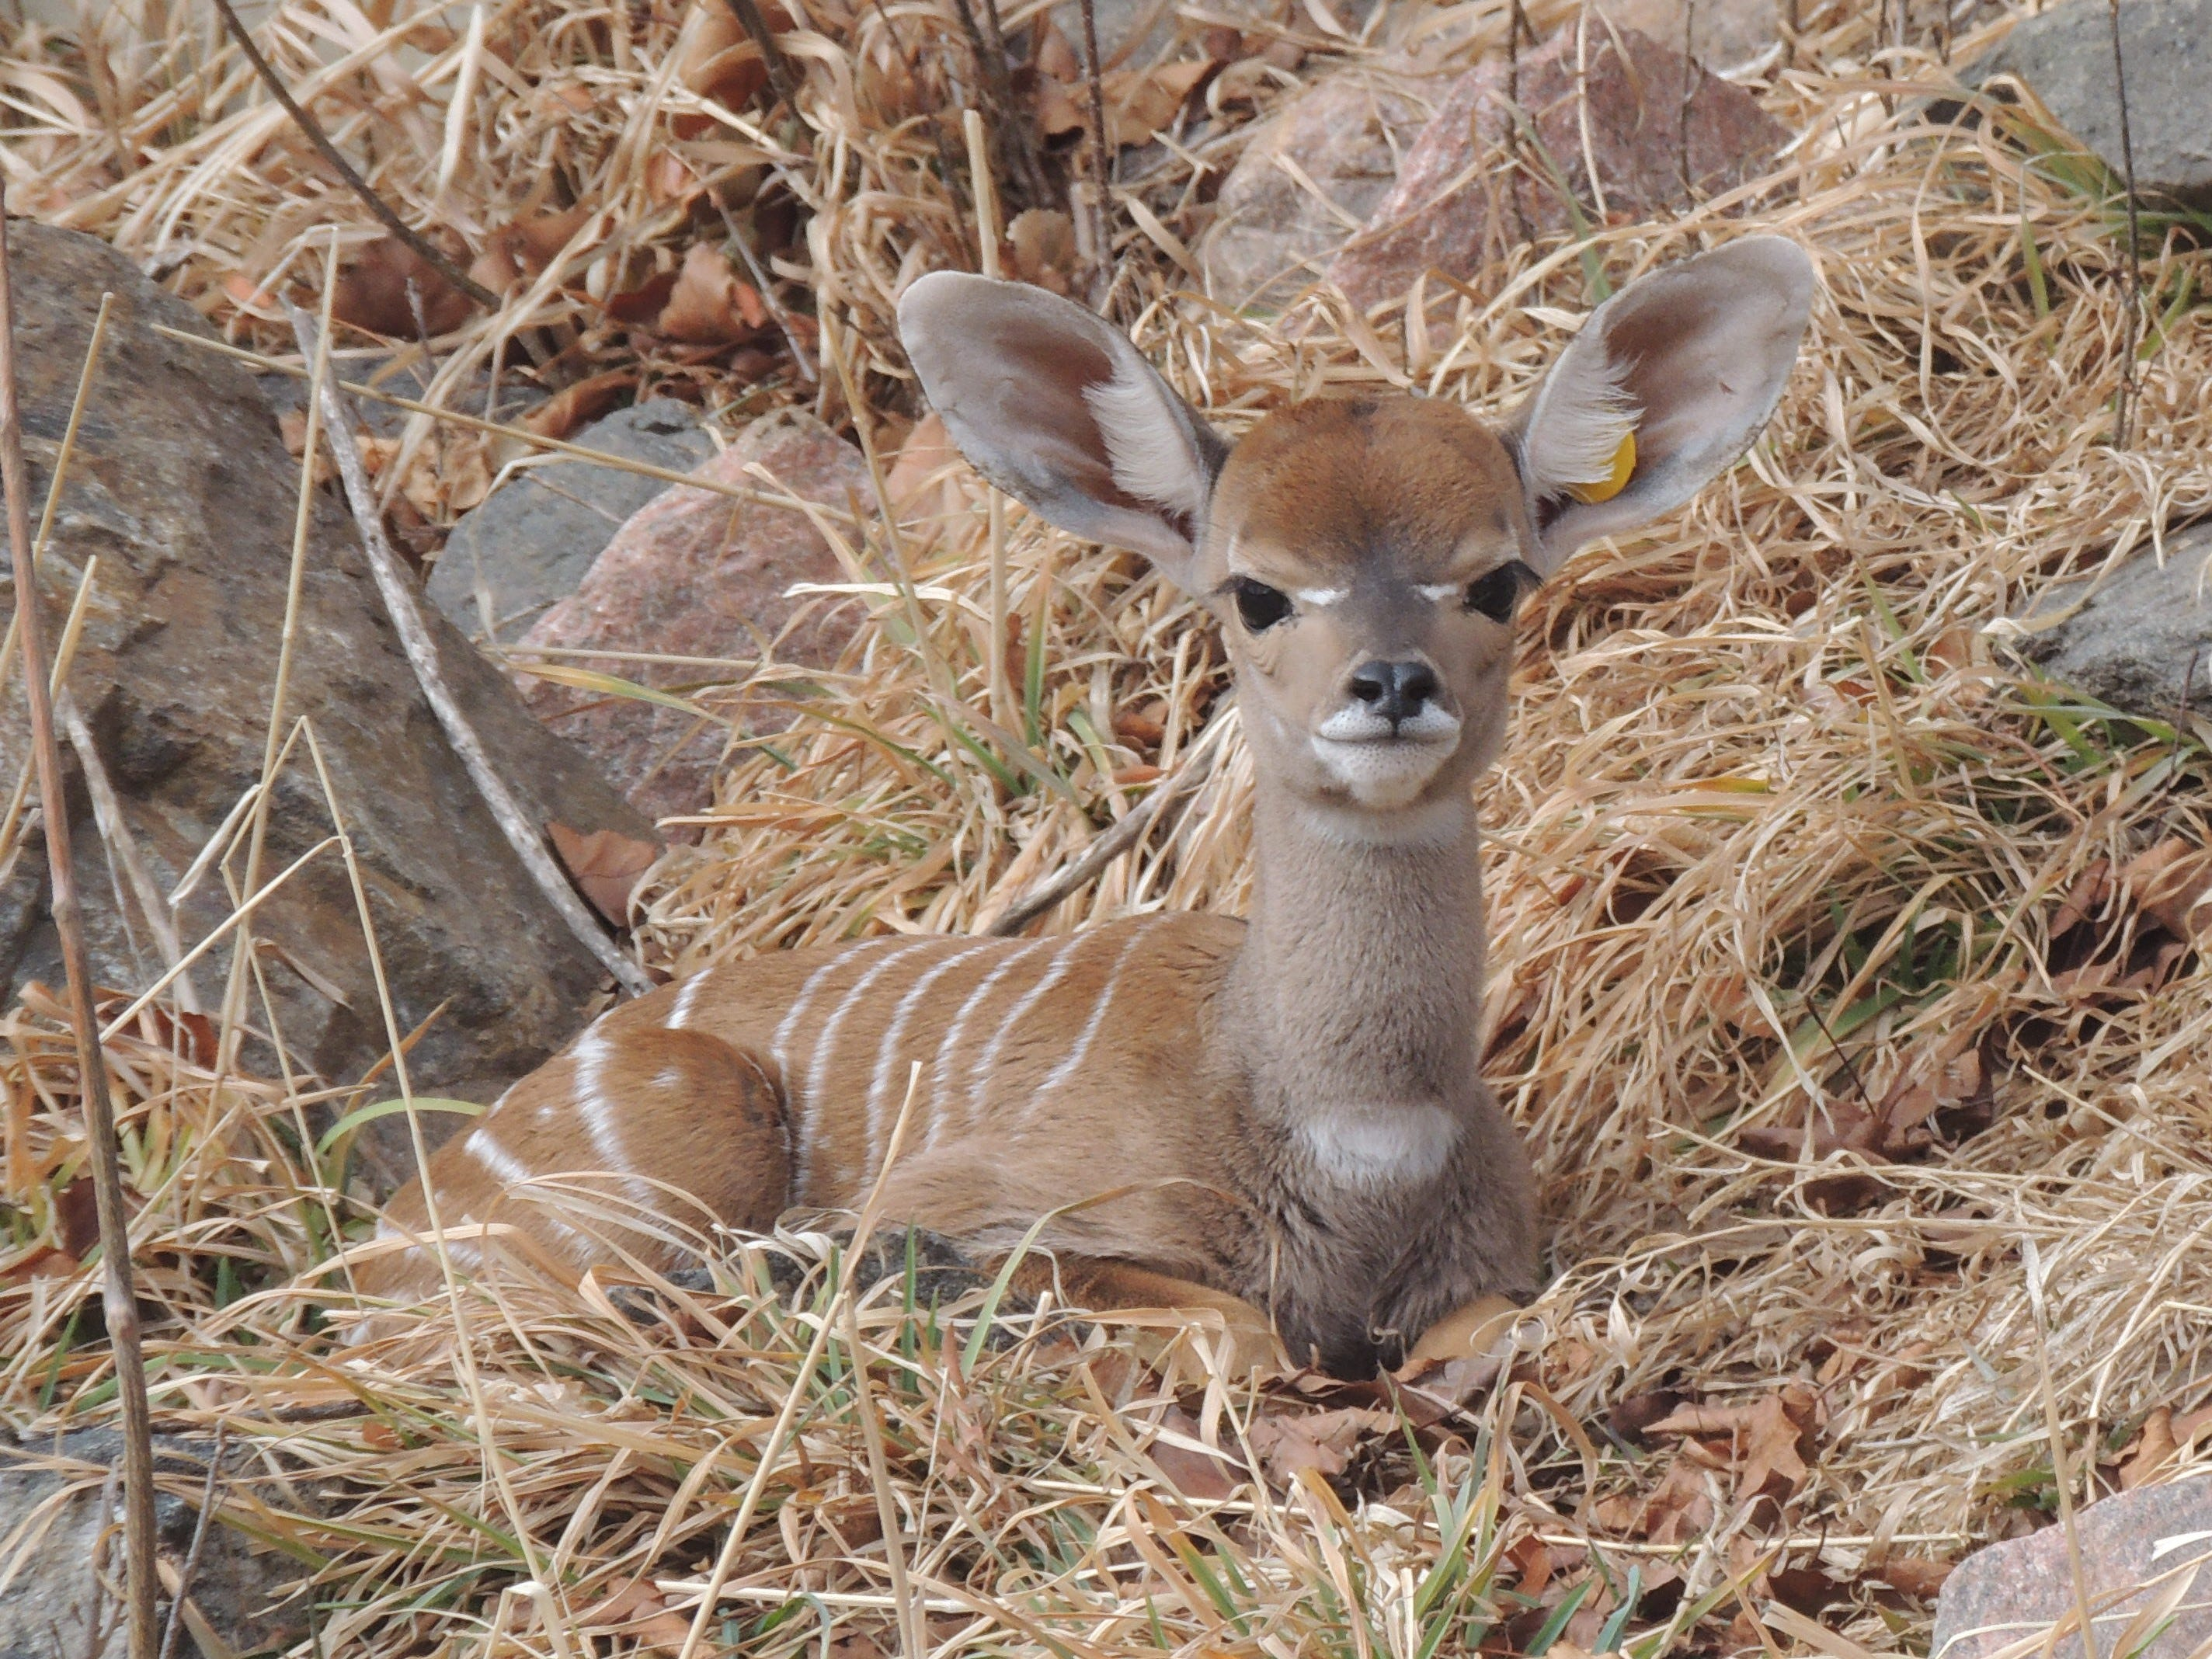 This little lesser kudu was born Feb. 5 and can be seen at the Central Ranges Exhibit at the Denver Zoo.